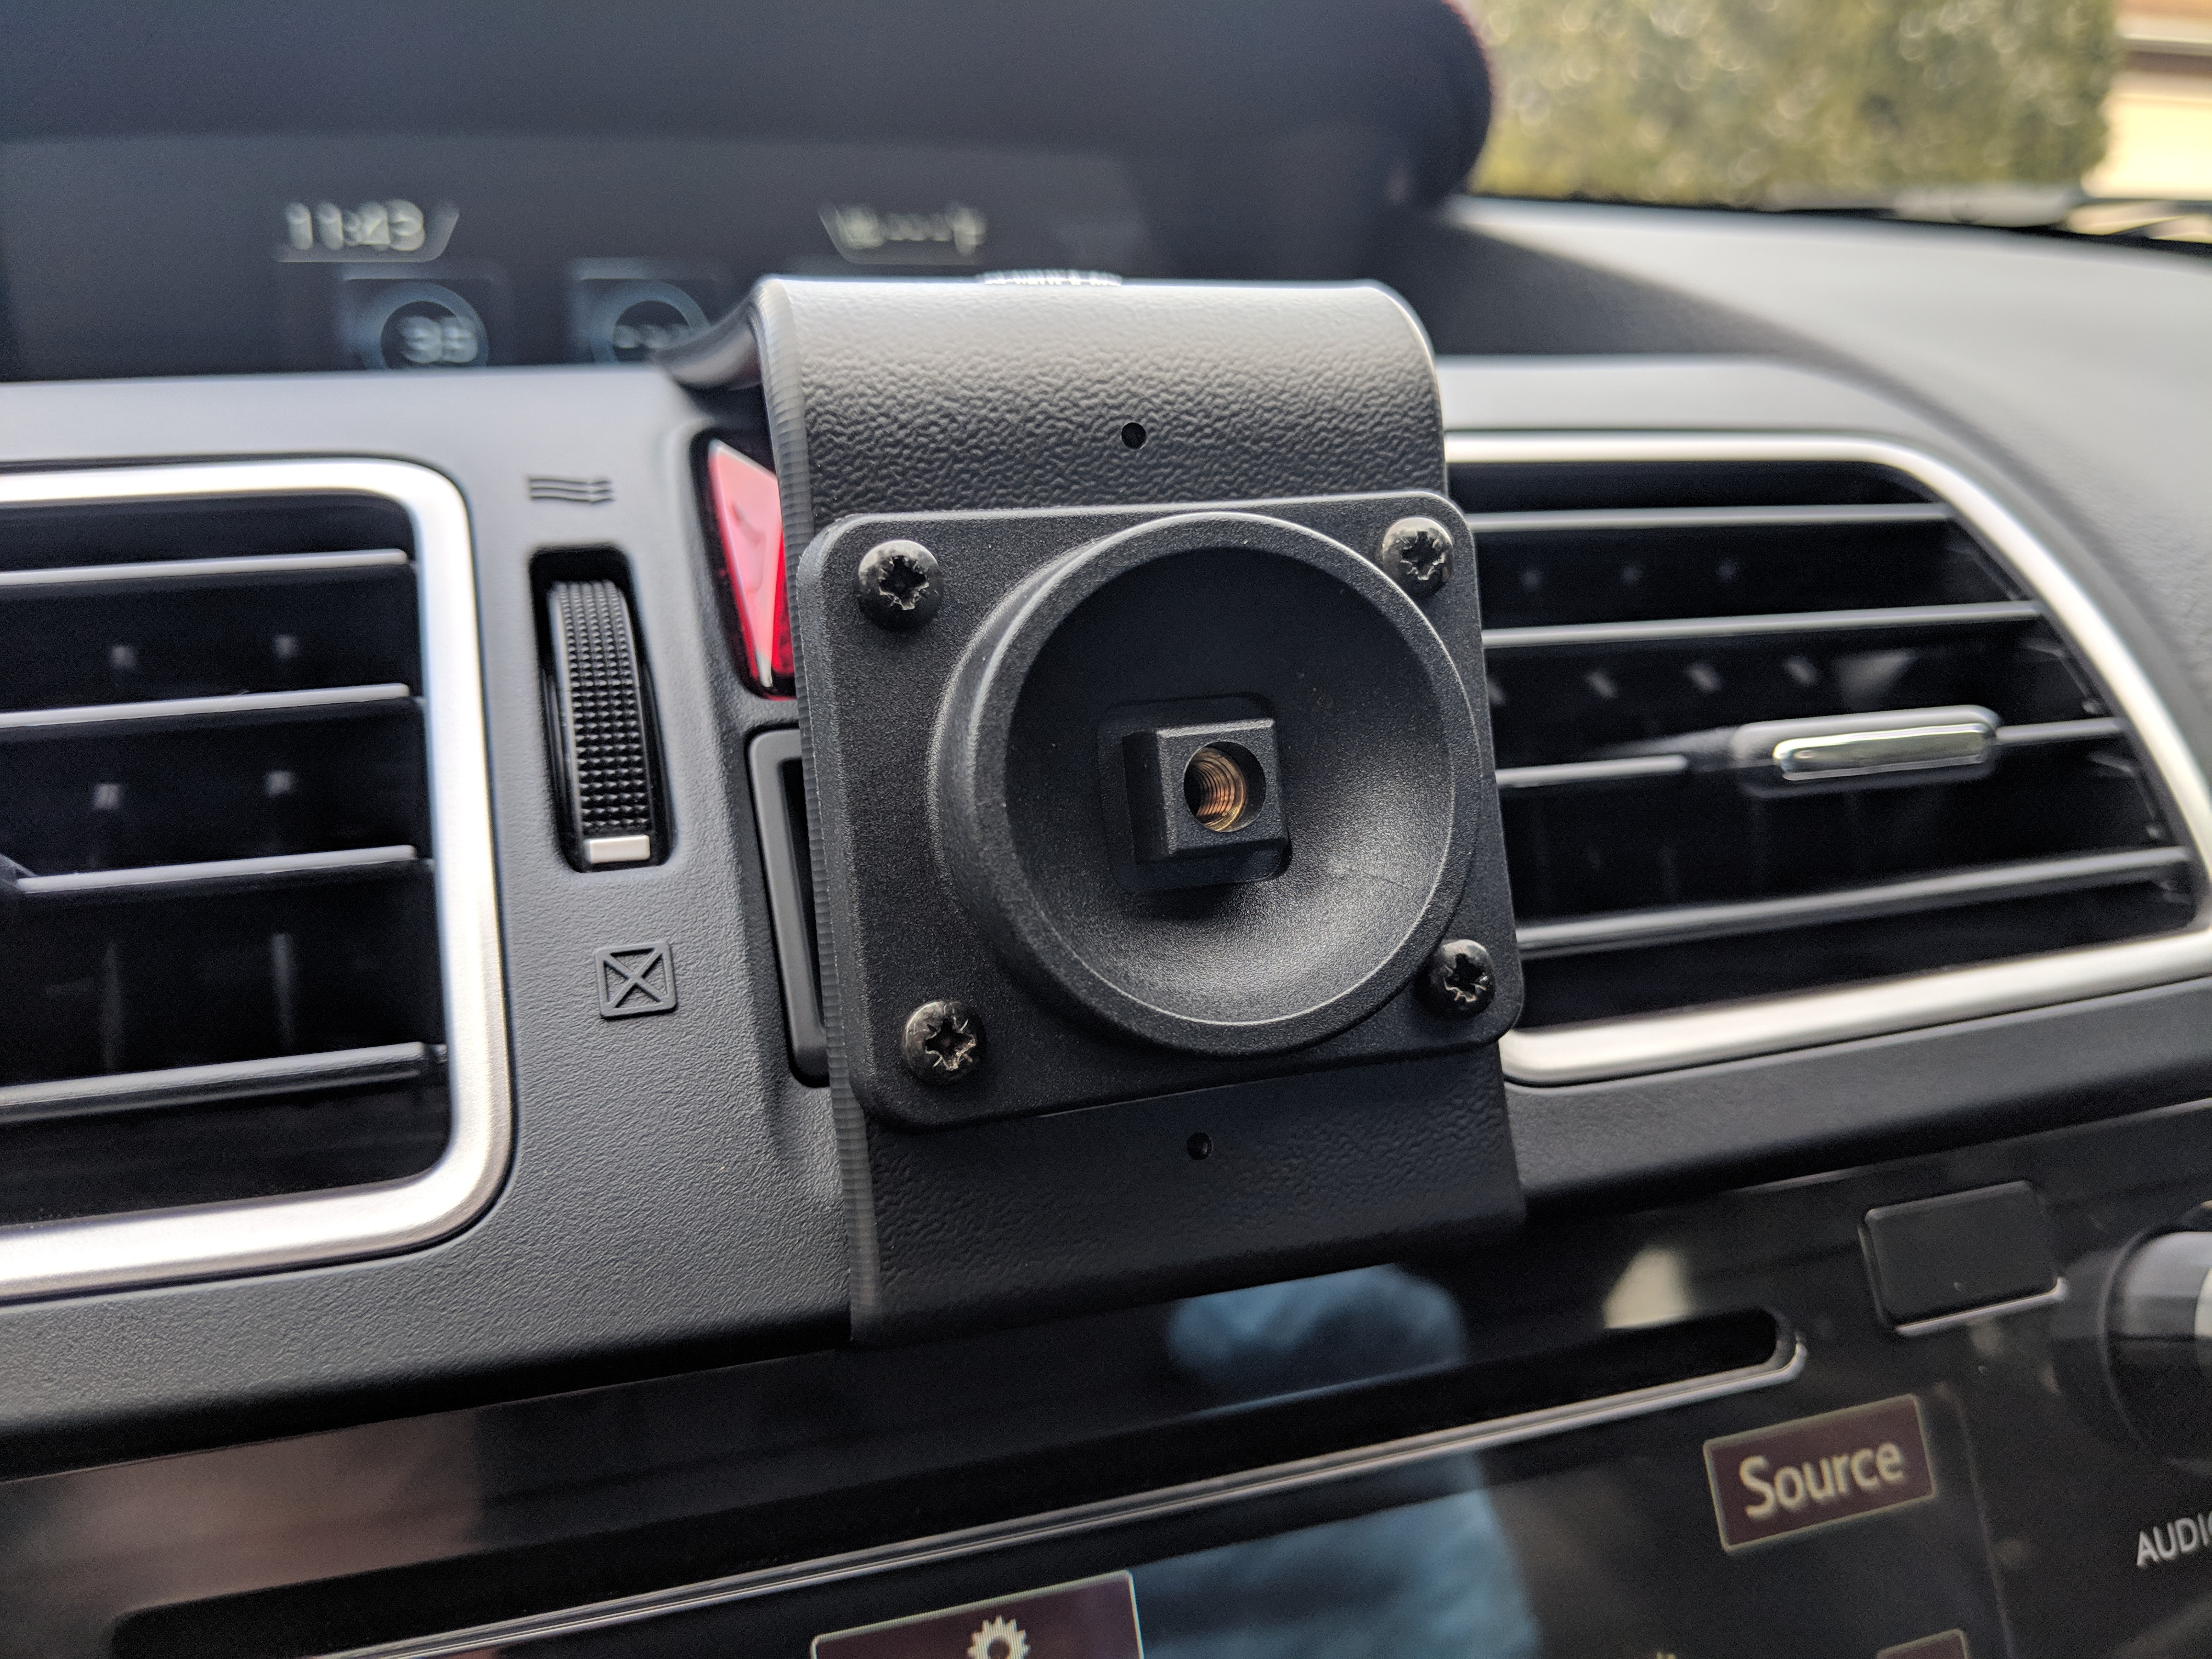 Adjustable Phone Holder mounted to the Center Mount